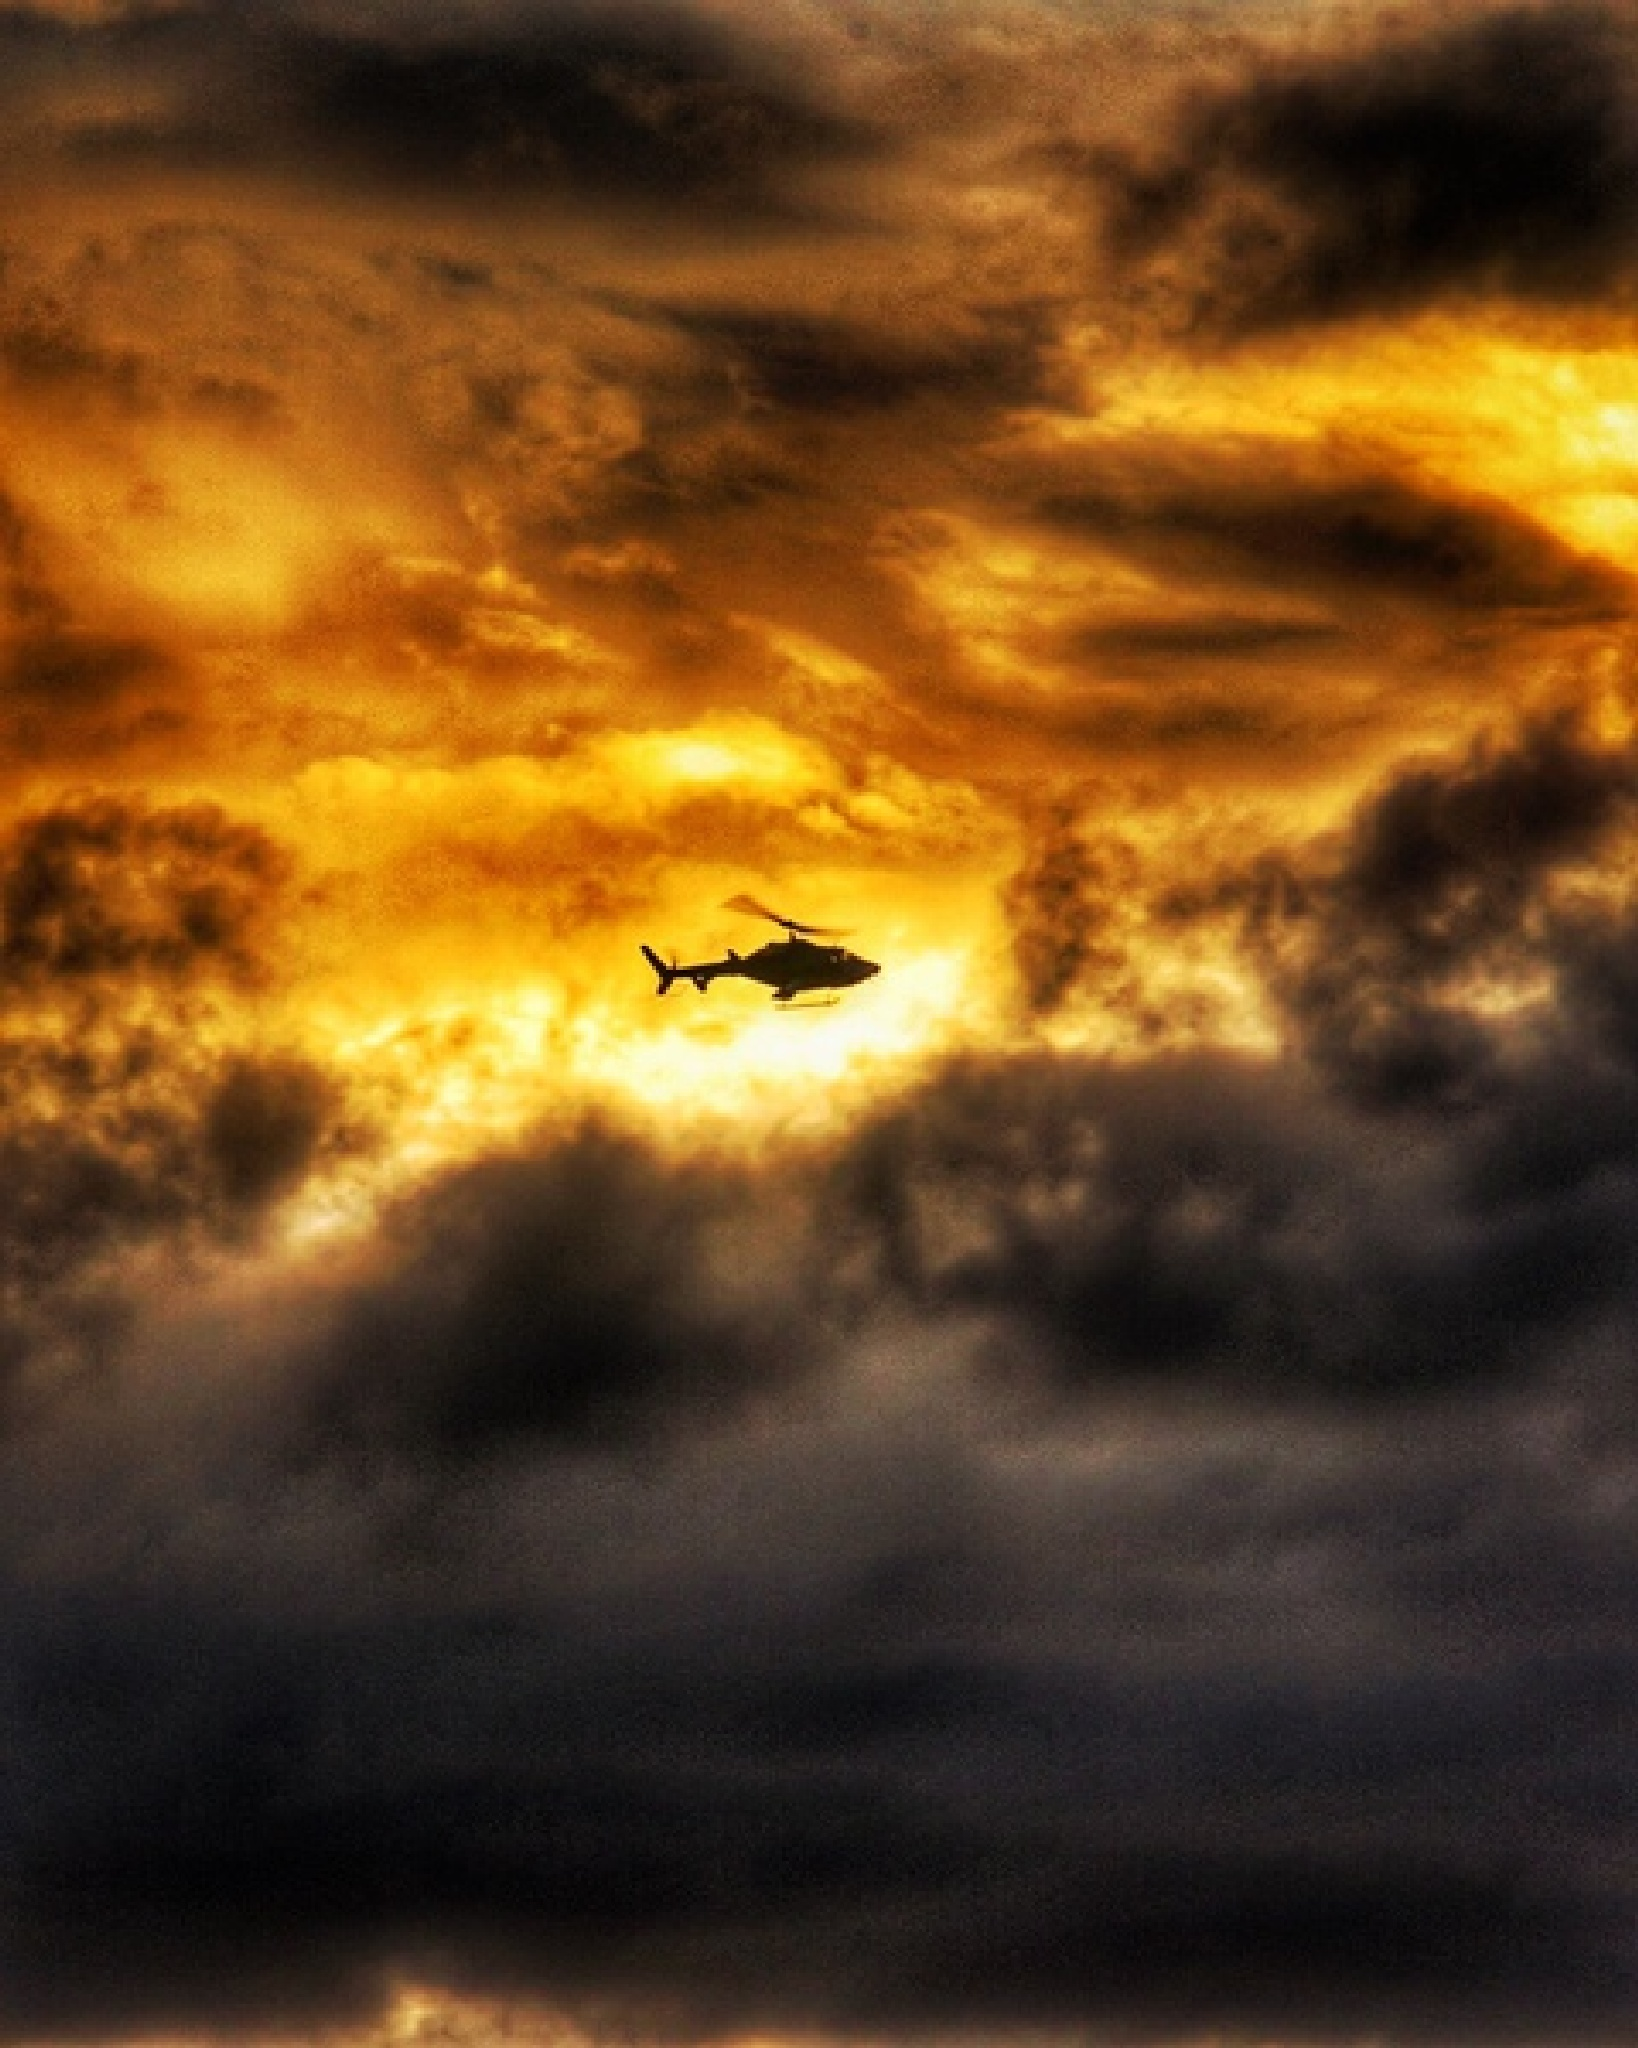 Fire Fly by Serge Kay